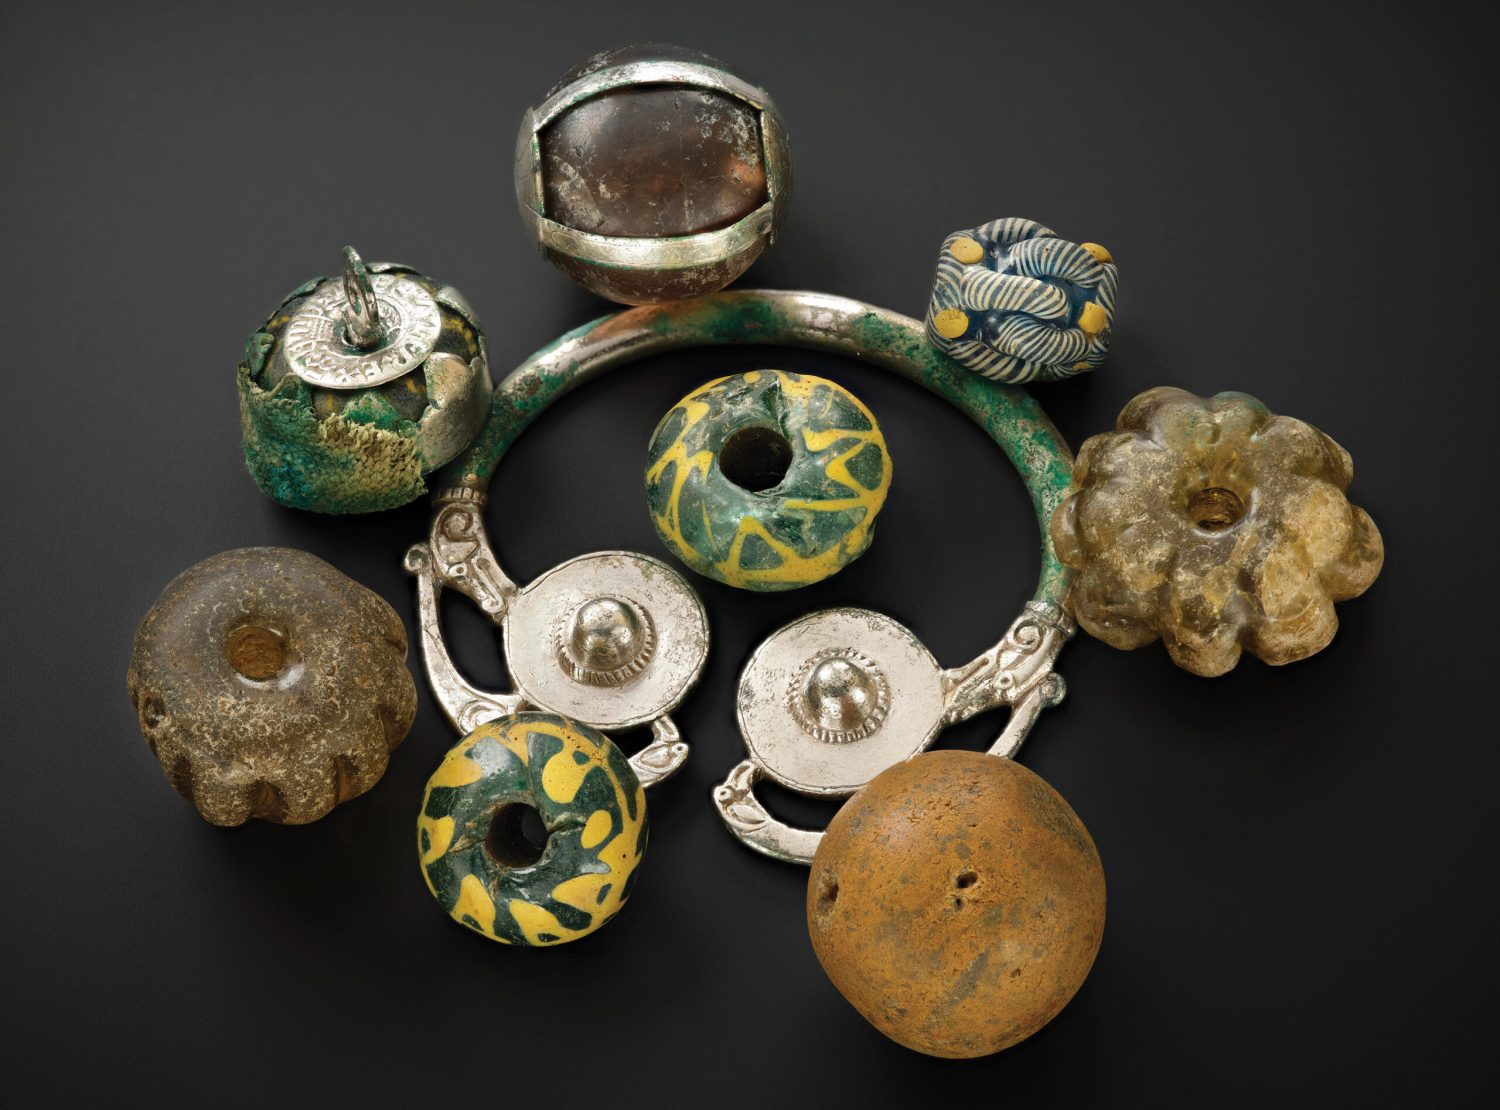 above Beads, curios, and heirloom objects were found together as a group resting on a silver brooch-hoop at the top of the lidded vessel in the Galloway Hoard.